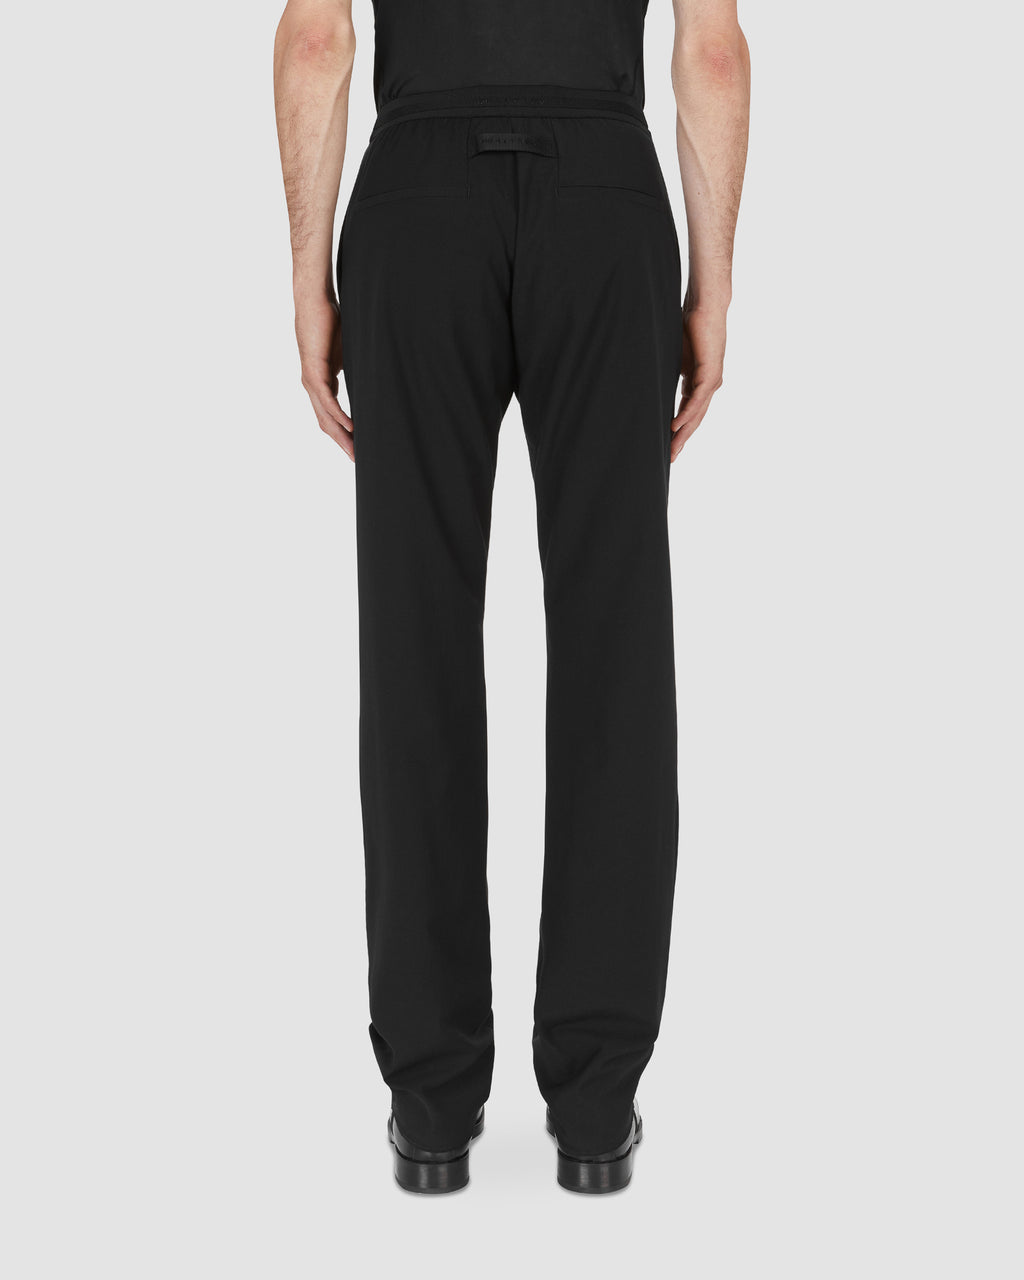 METAL BUCKLE SUIT PANT